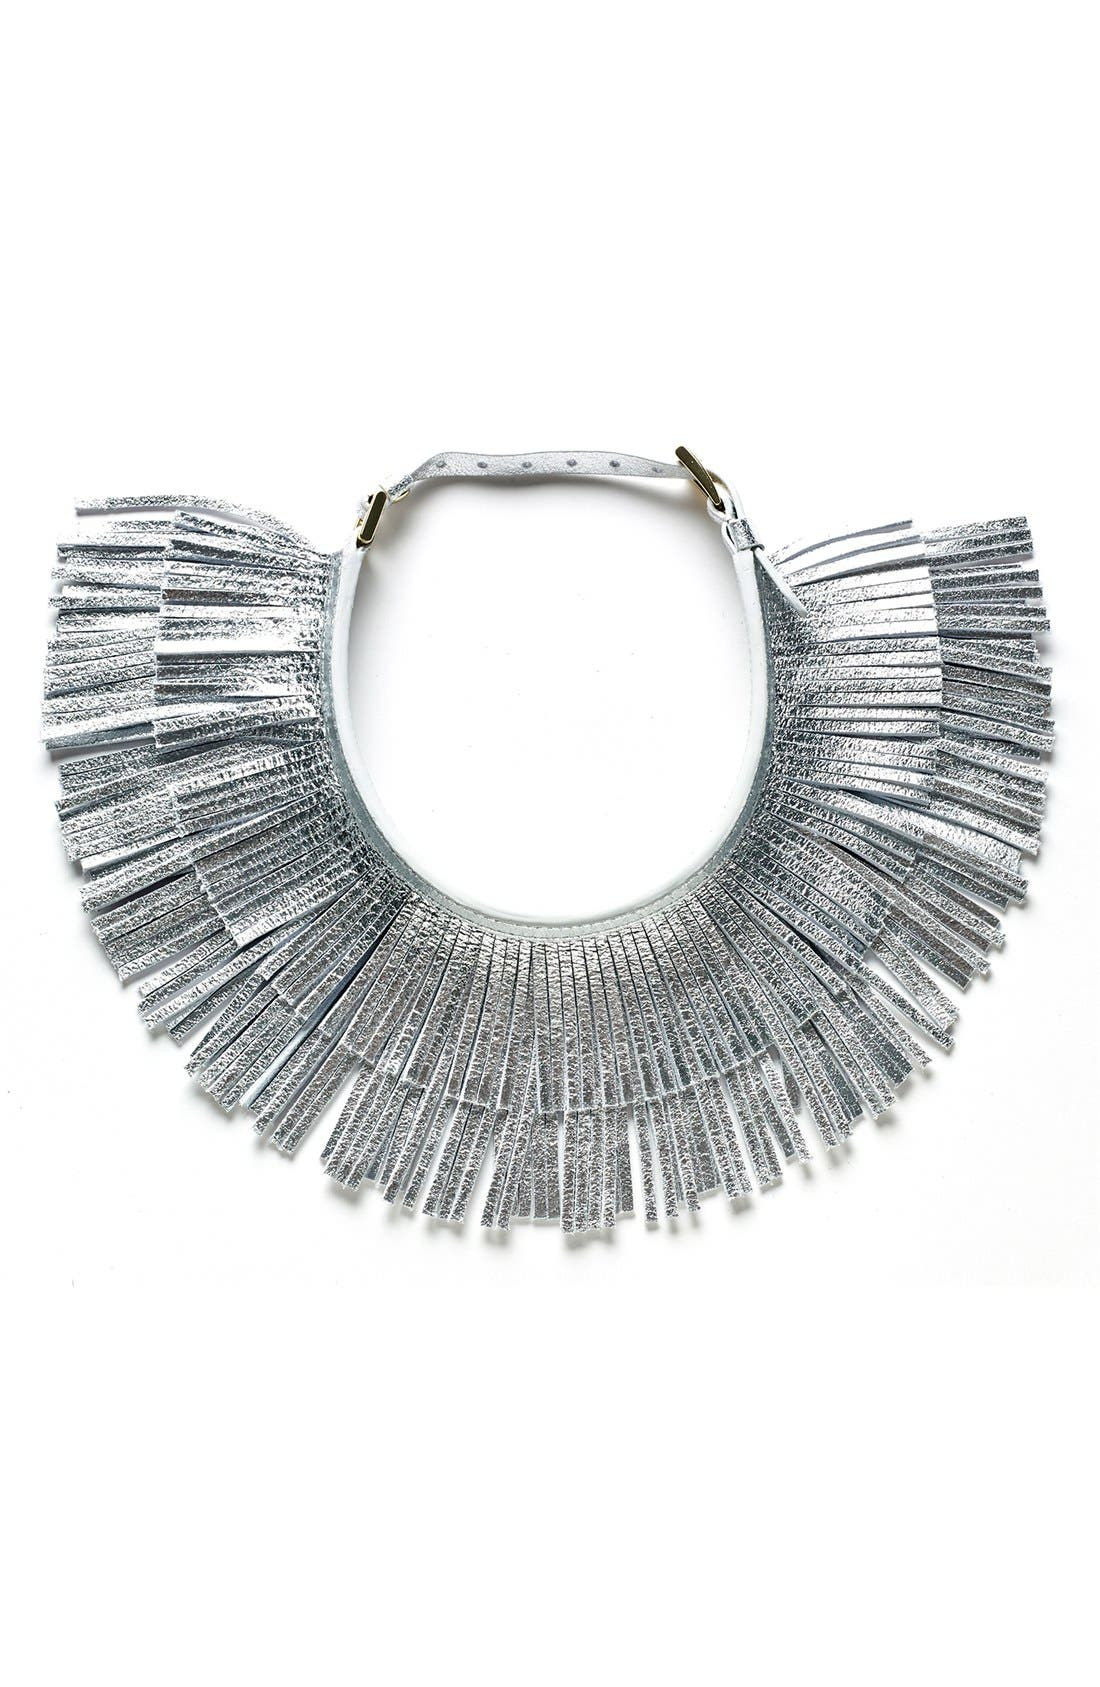 Alternate Image 1 Selected - Hayden-Harnett 'Ilaria' Leather Fringe Collar Necklace